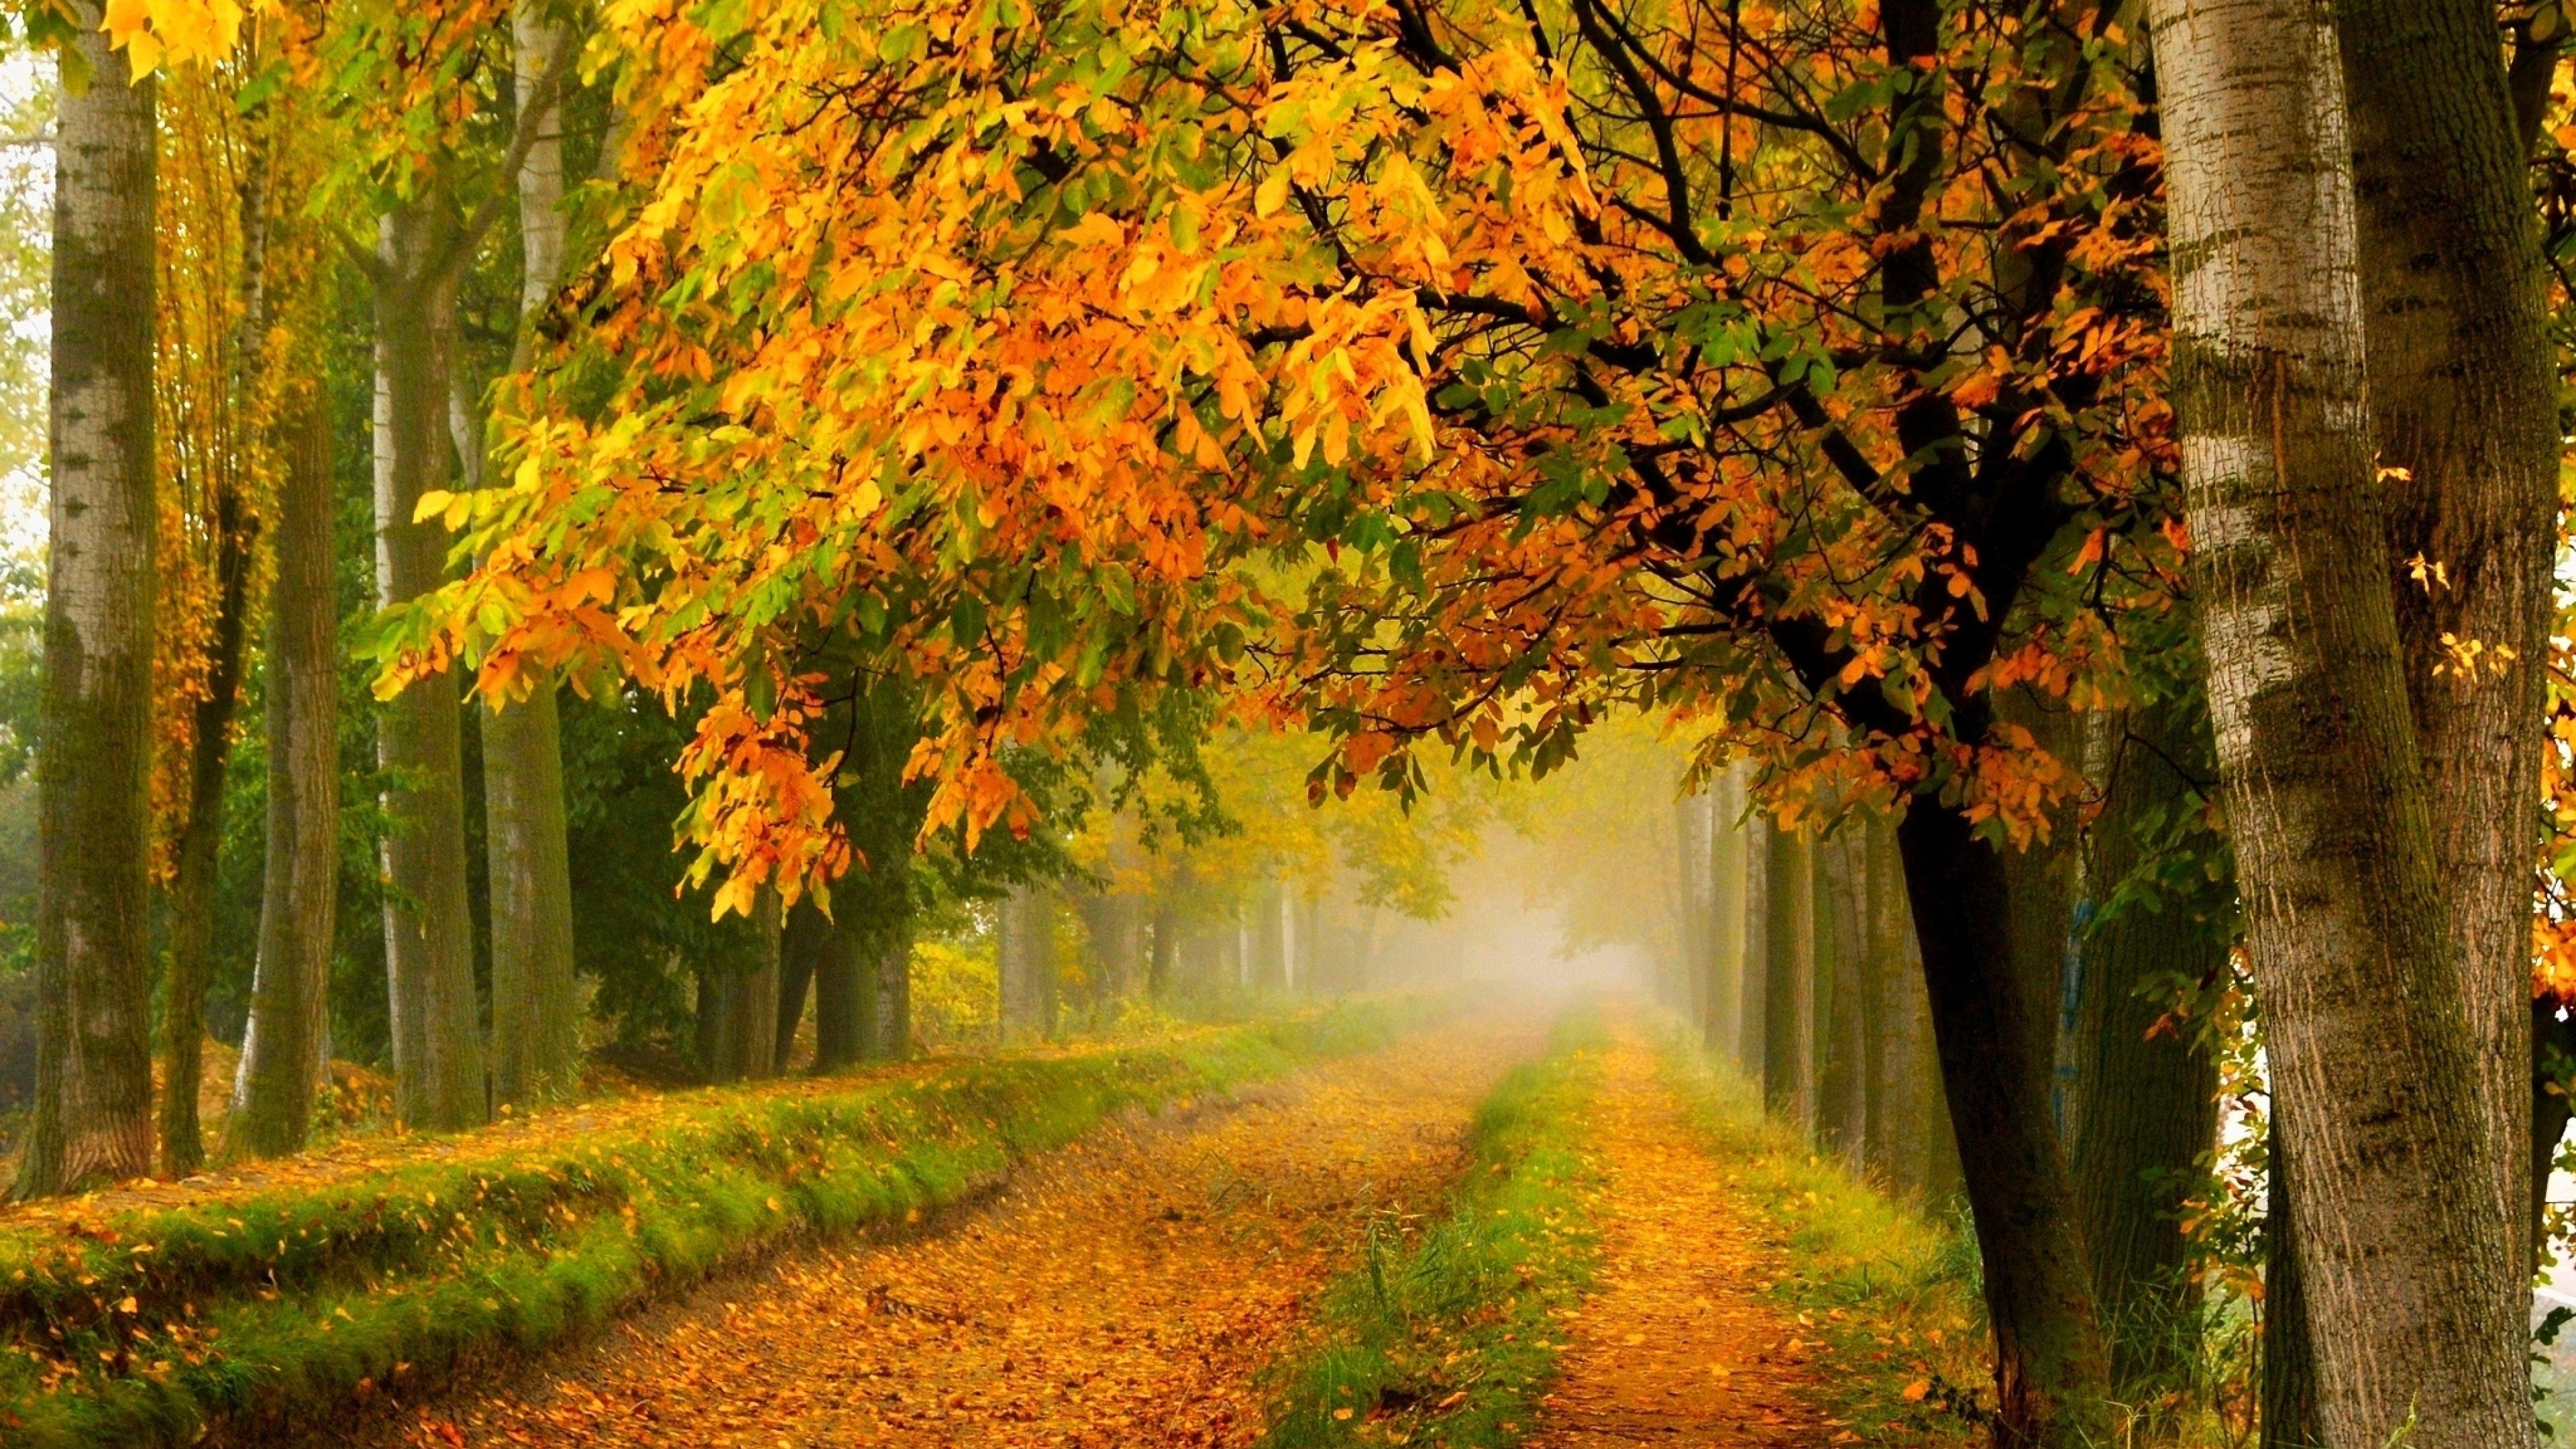 Fall Of Gods Wallpaper Background Autumn Trees With Yellow Leaves Country Road